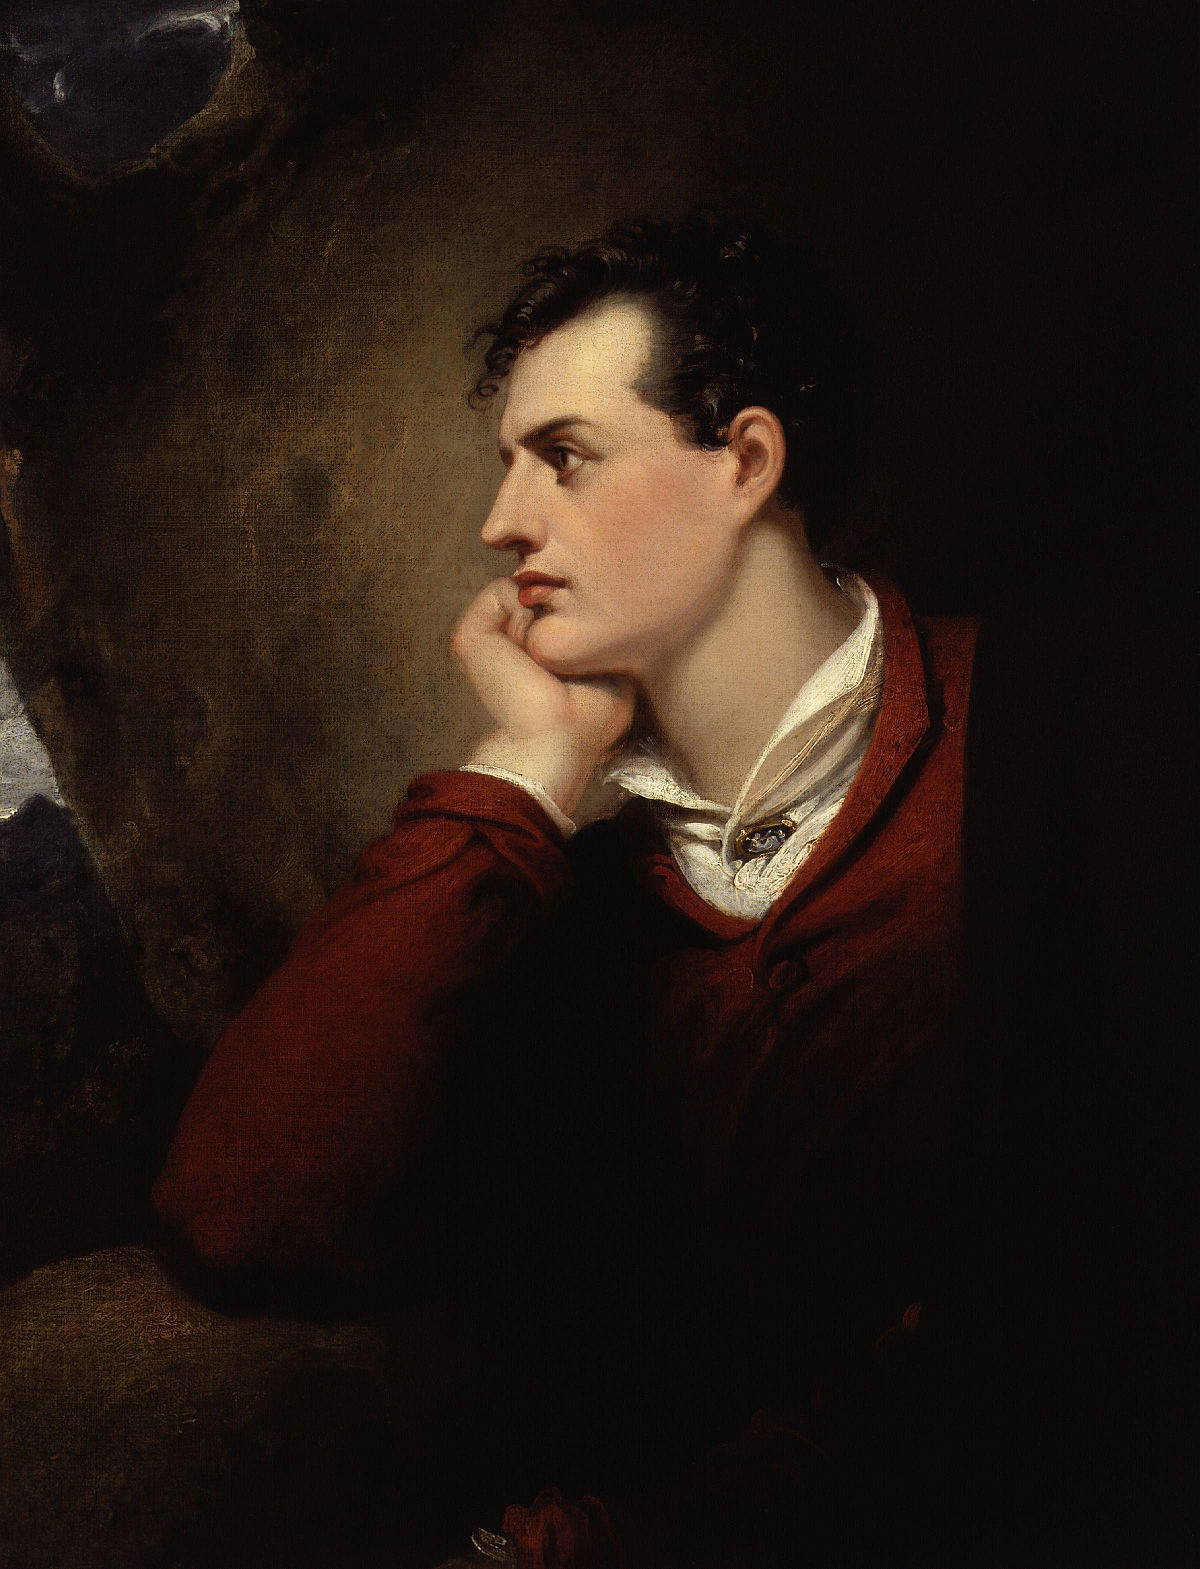 1200px-George Gordon Byron 6th Baron Byron by Richard Westall 2